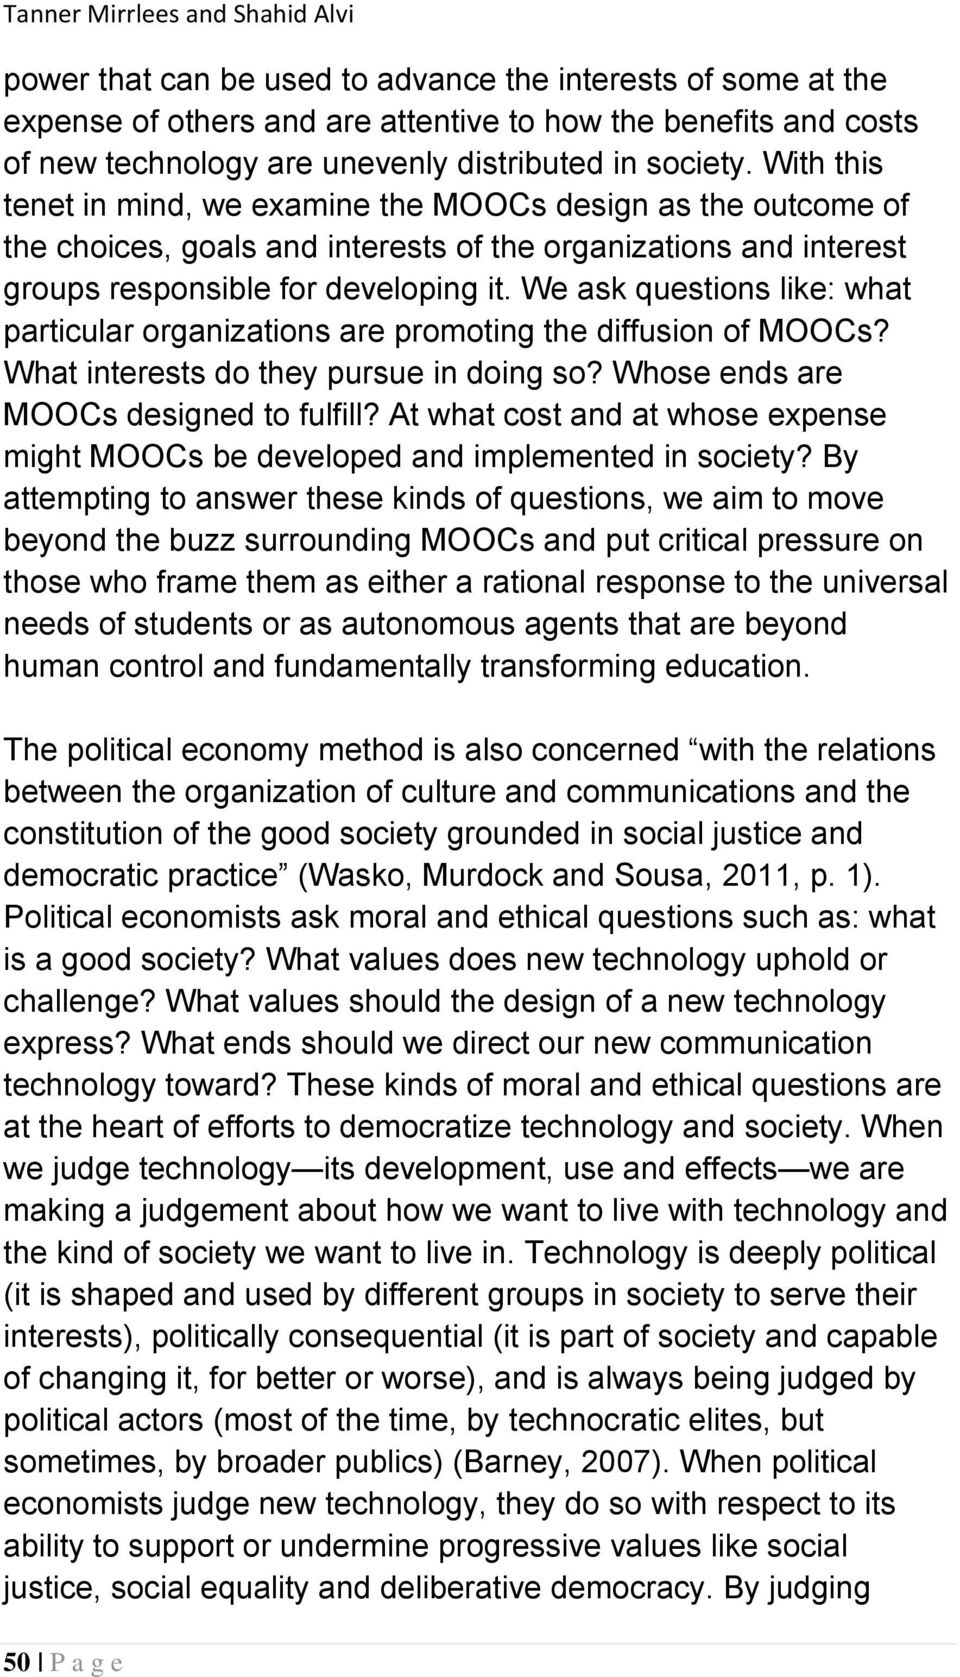 We ask questions like: what particular organizations are promoting the diffusion of MOOCs? What interests do they pursue in doing so? Whose ends are MOOCs designed to fulfill?